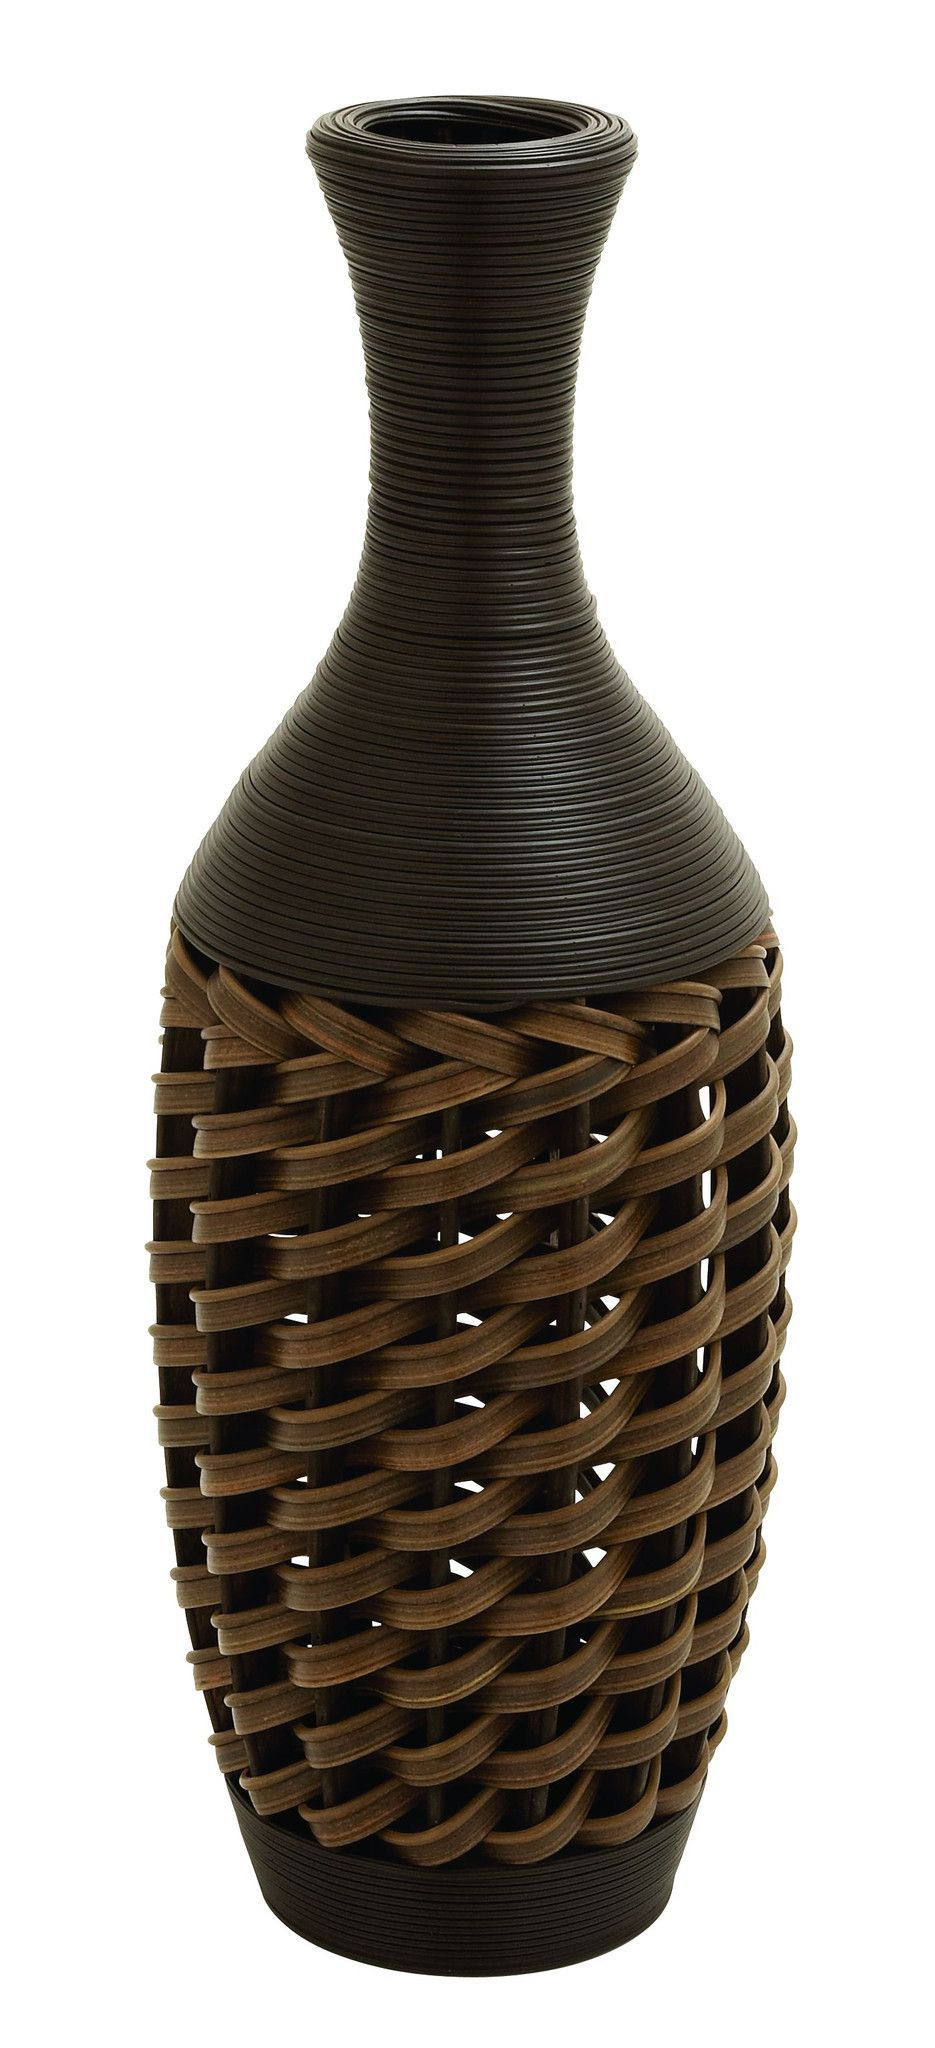 tall brown floor vases of 32 tall brown woven decorative floor vase african jungle safari pertaining to 32 tall brown woven decorative floor vase african jungle safari decor products jungles and decor